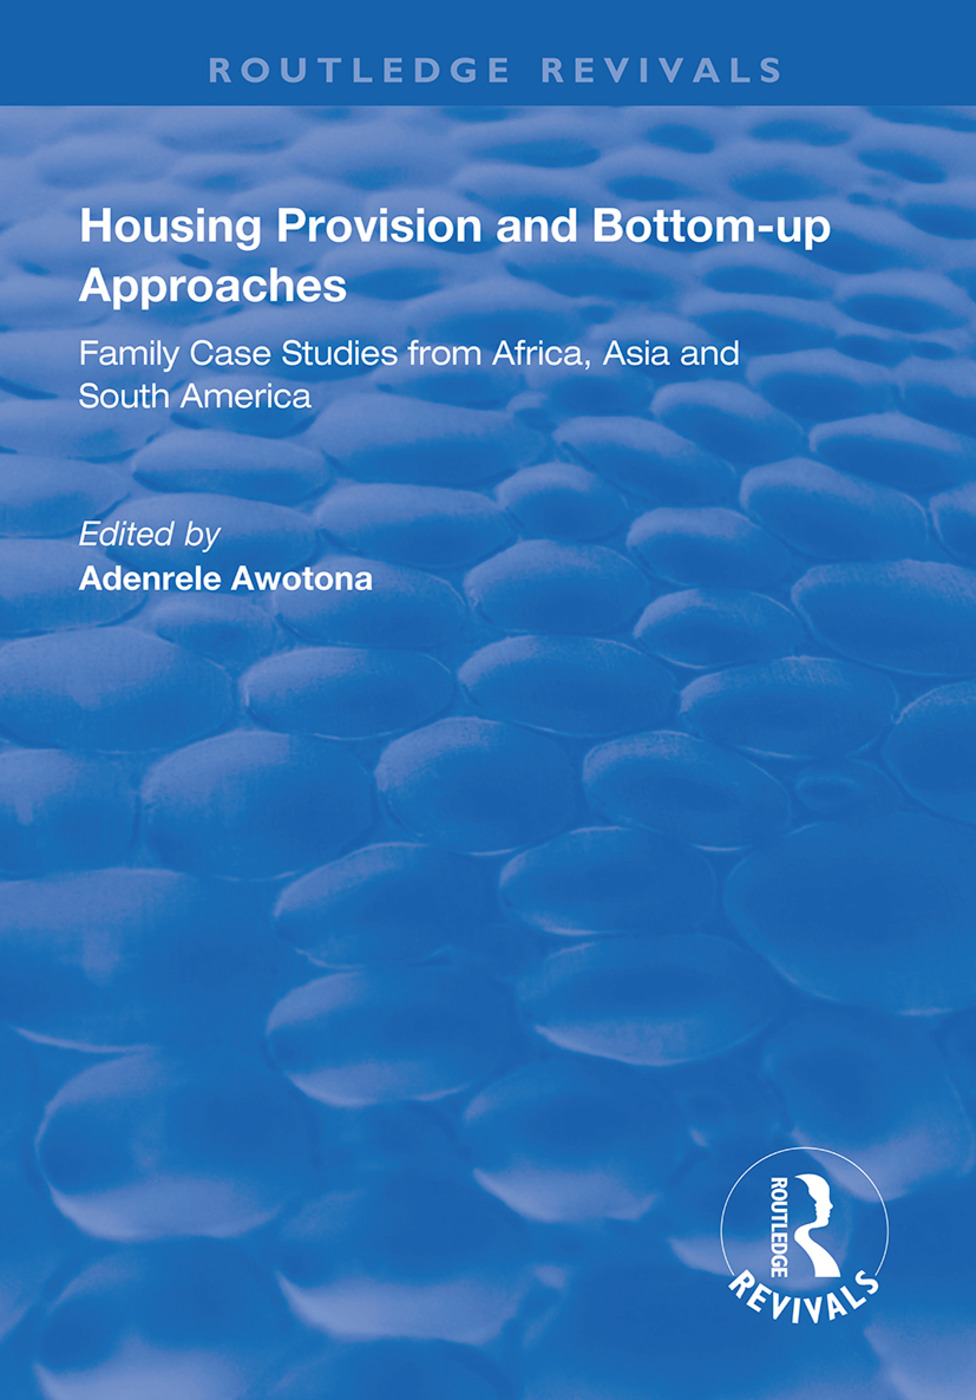 Housing Provision and Bottom-up Approaches: Family Case Studies from Africa, Asia and South America book cover